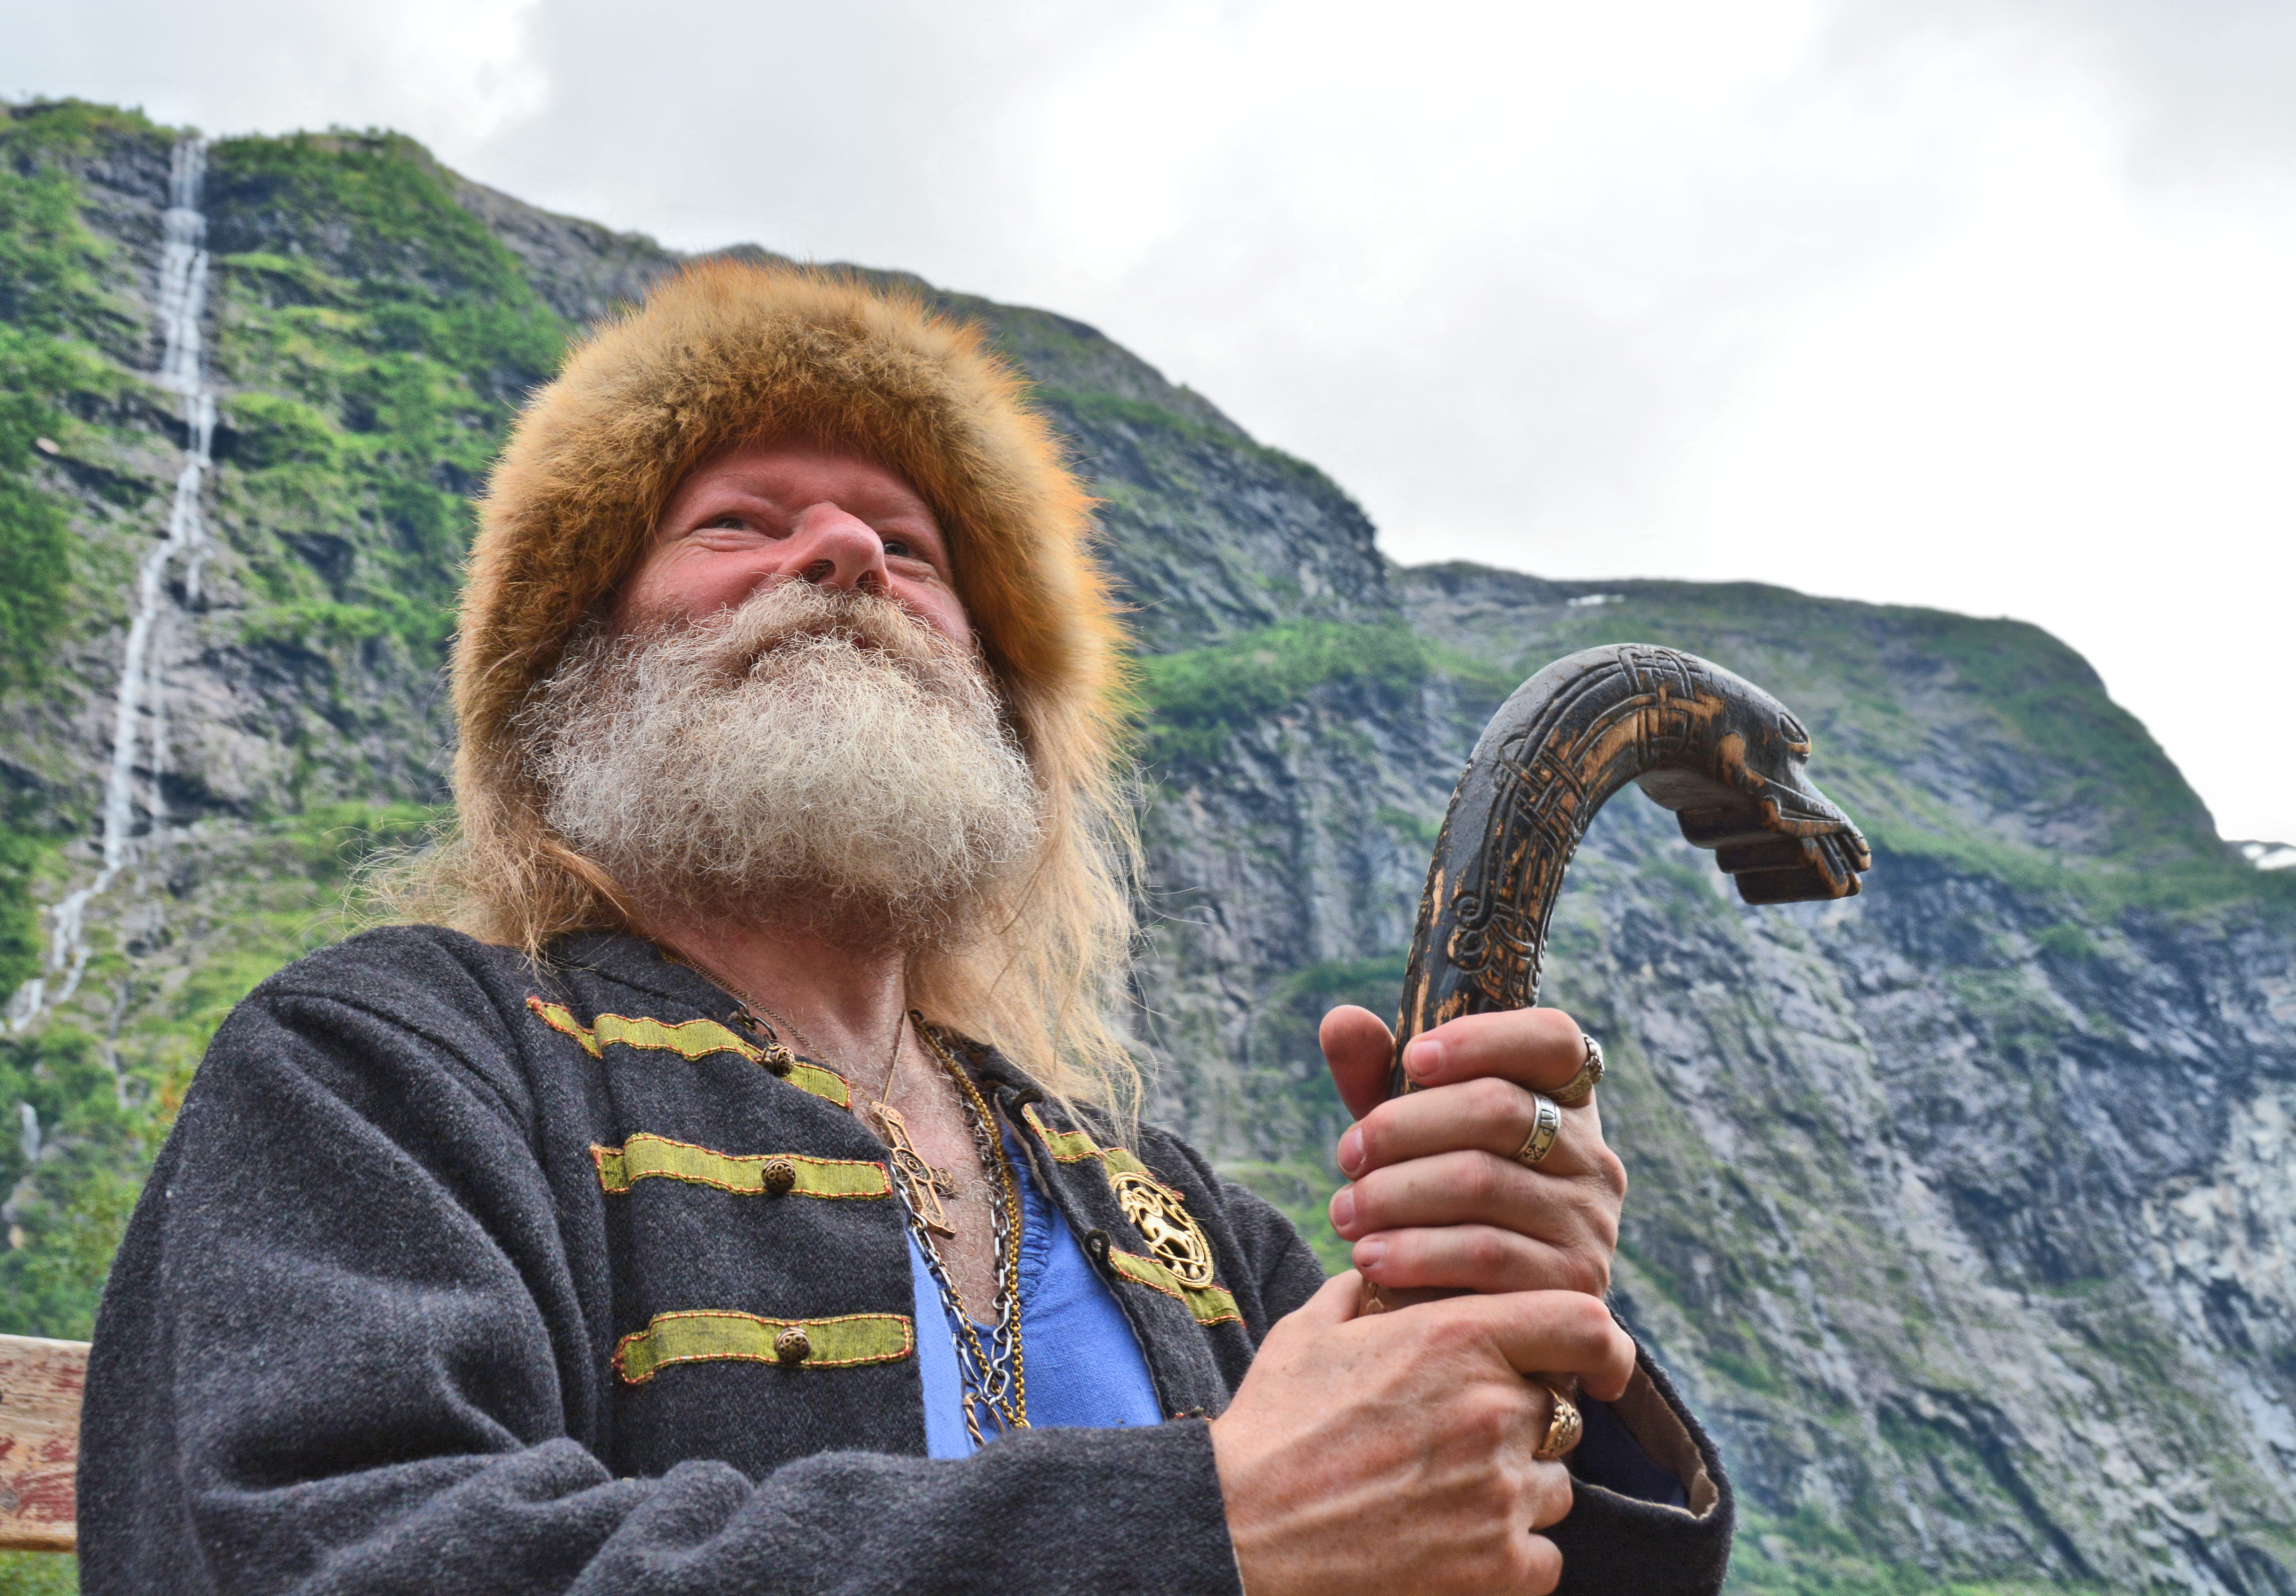 Real Norwegian viking in Gudvangen